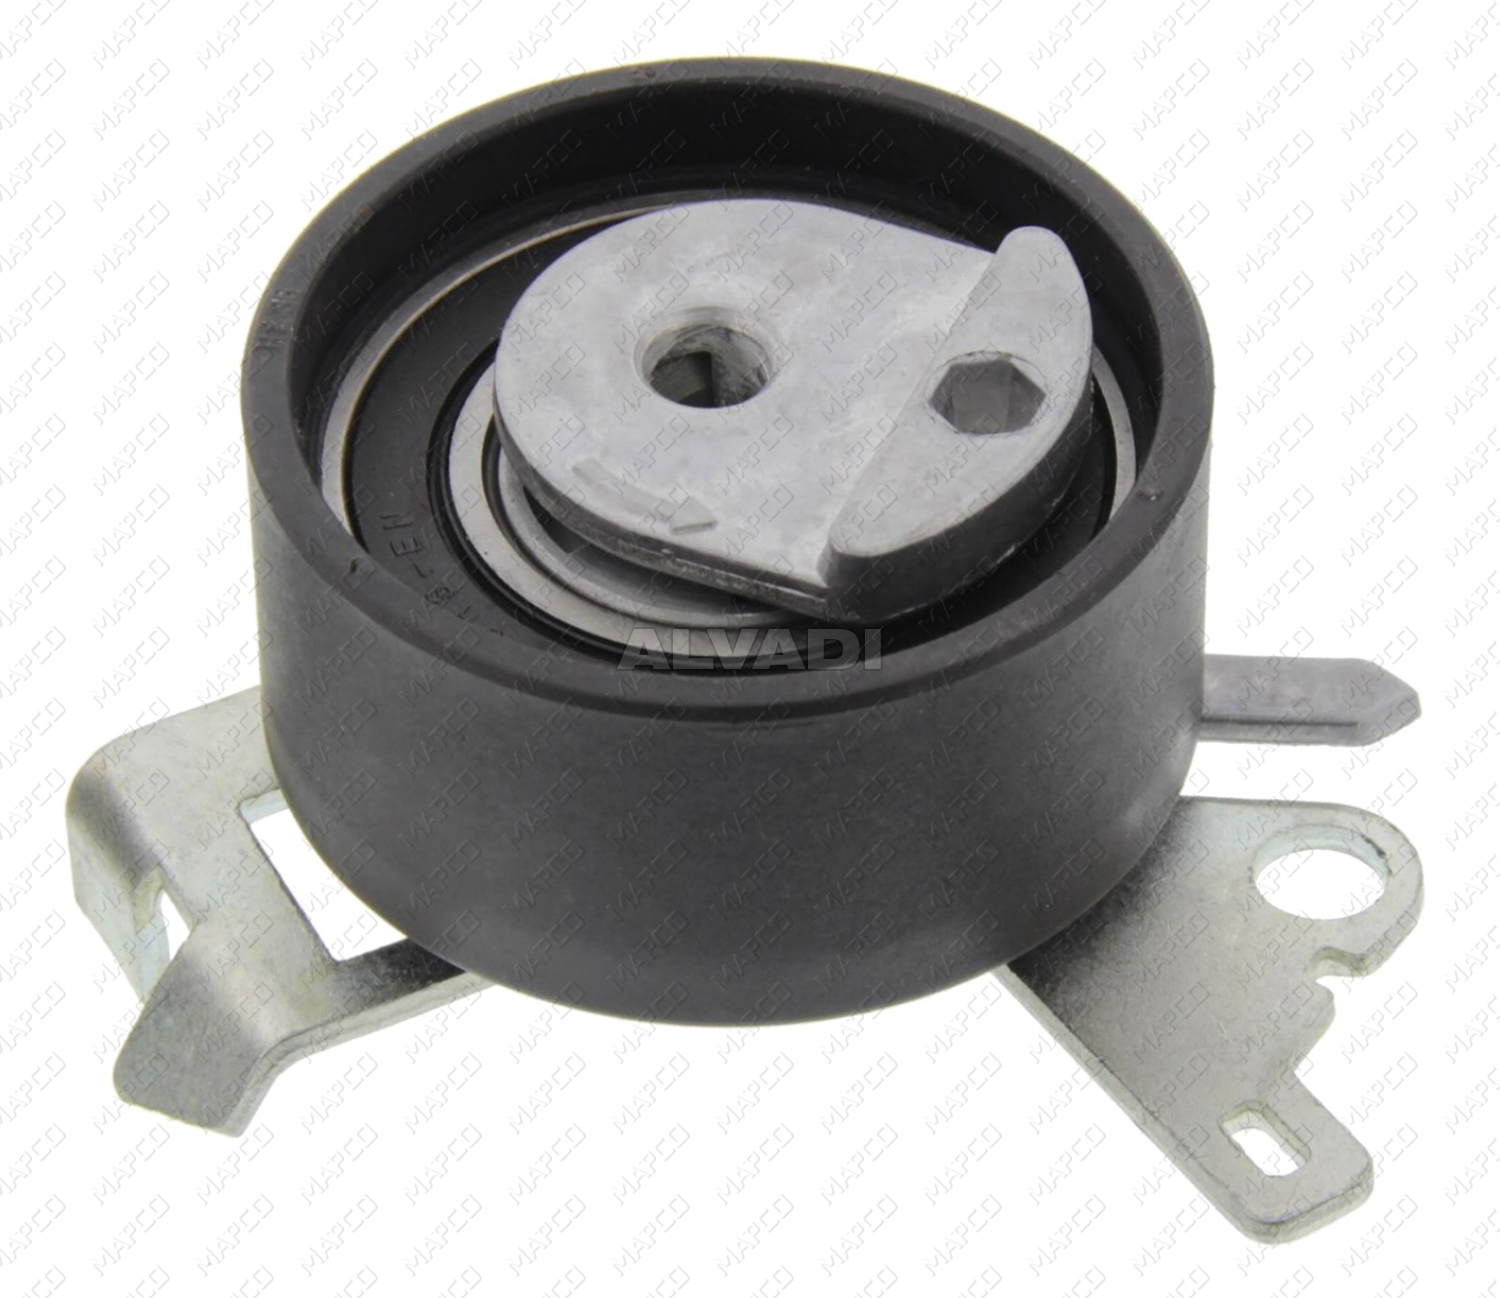 Tensioner Pulley Timing Belt Mapco 24353 For Citroen Peugeot